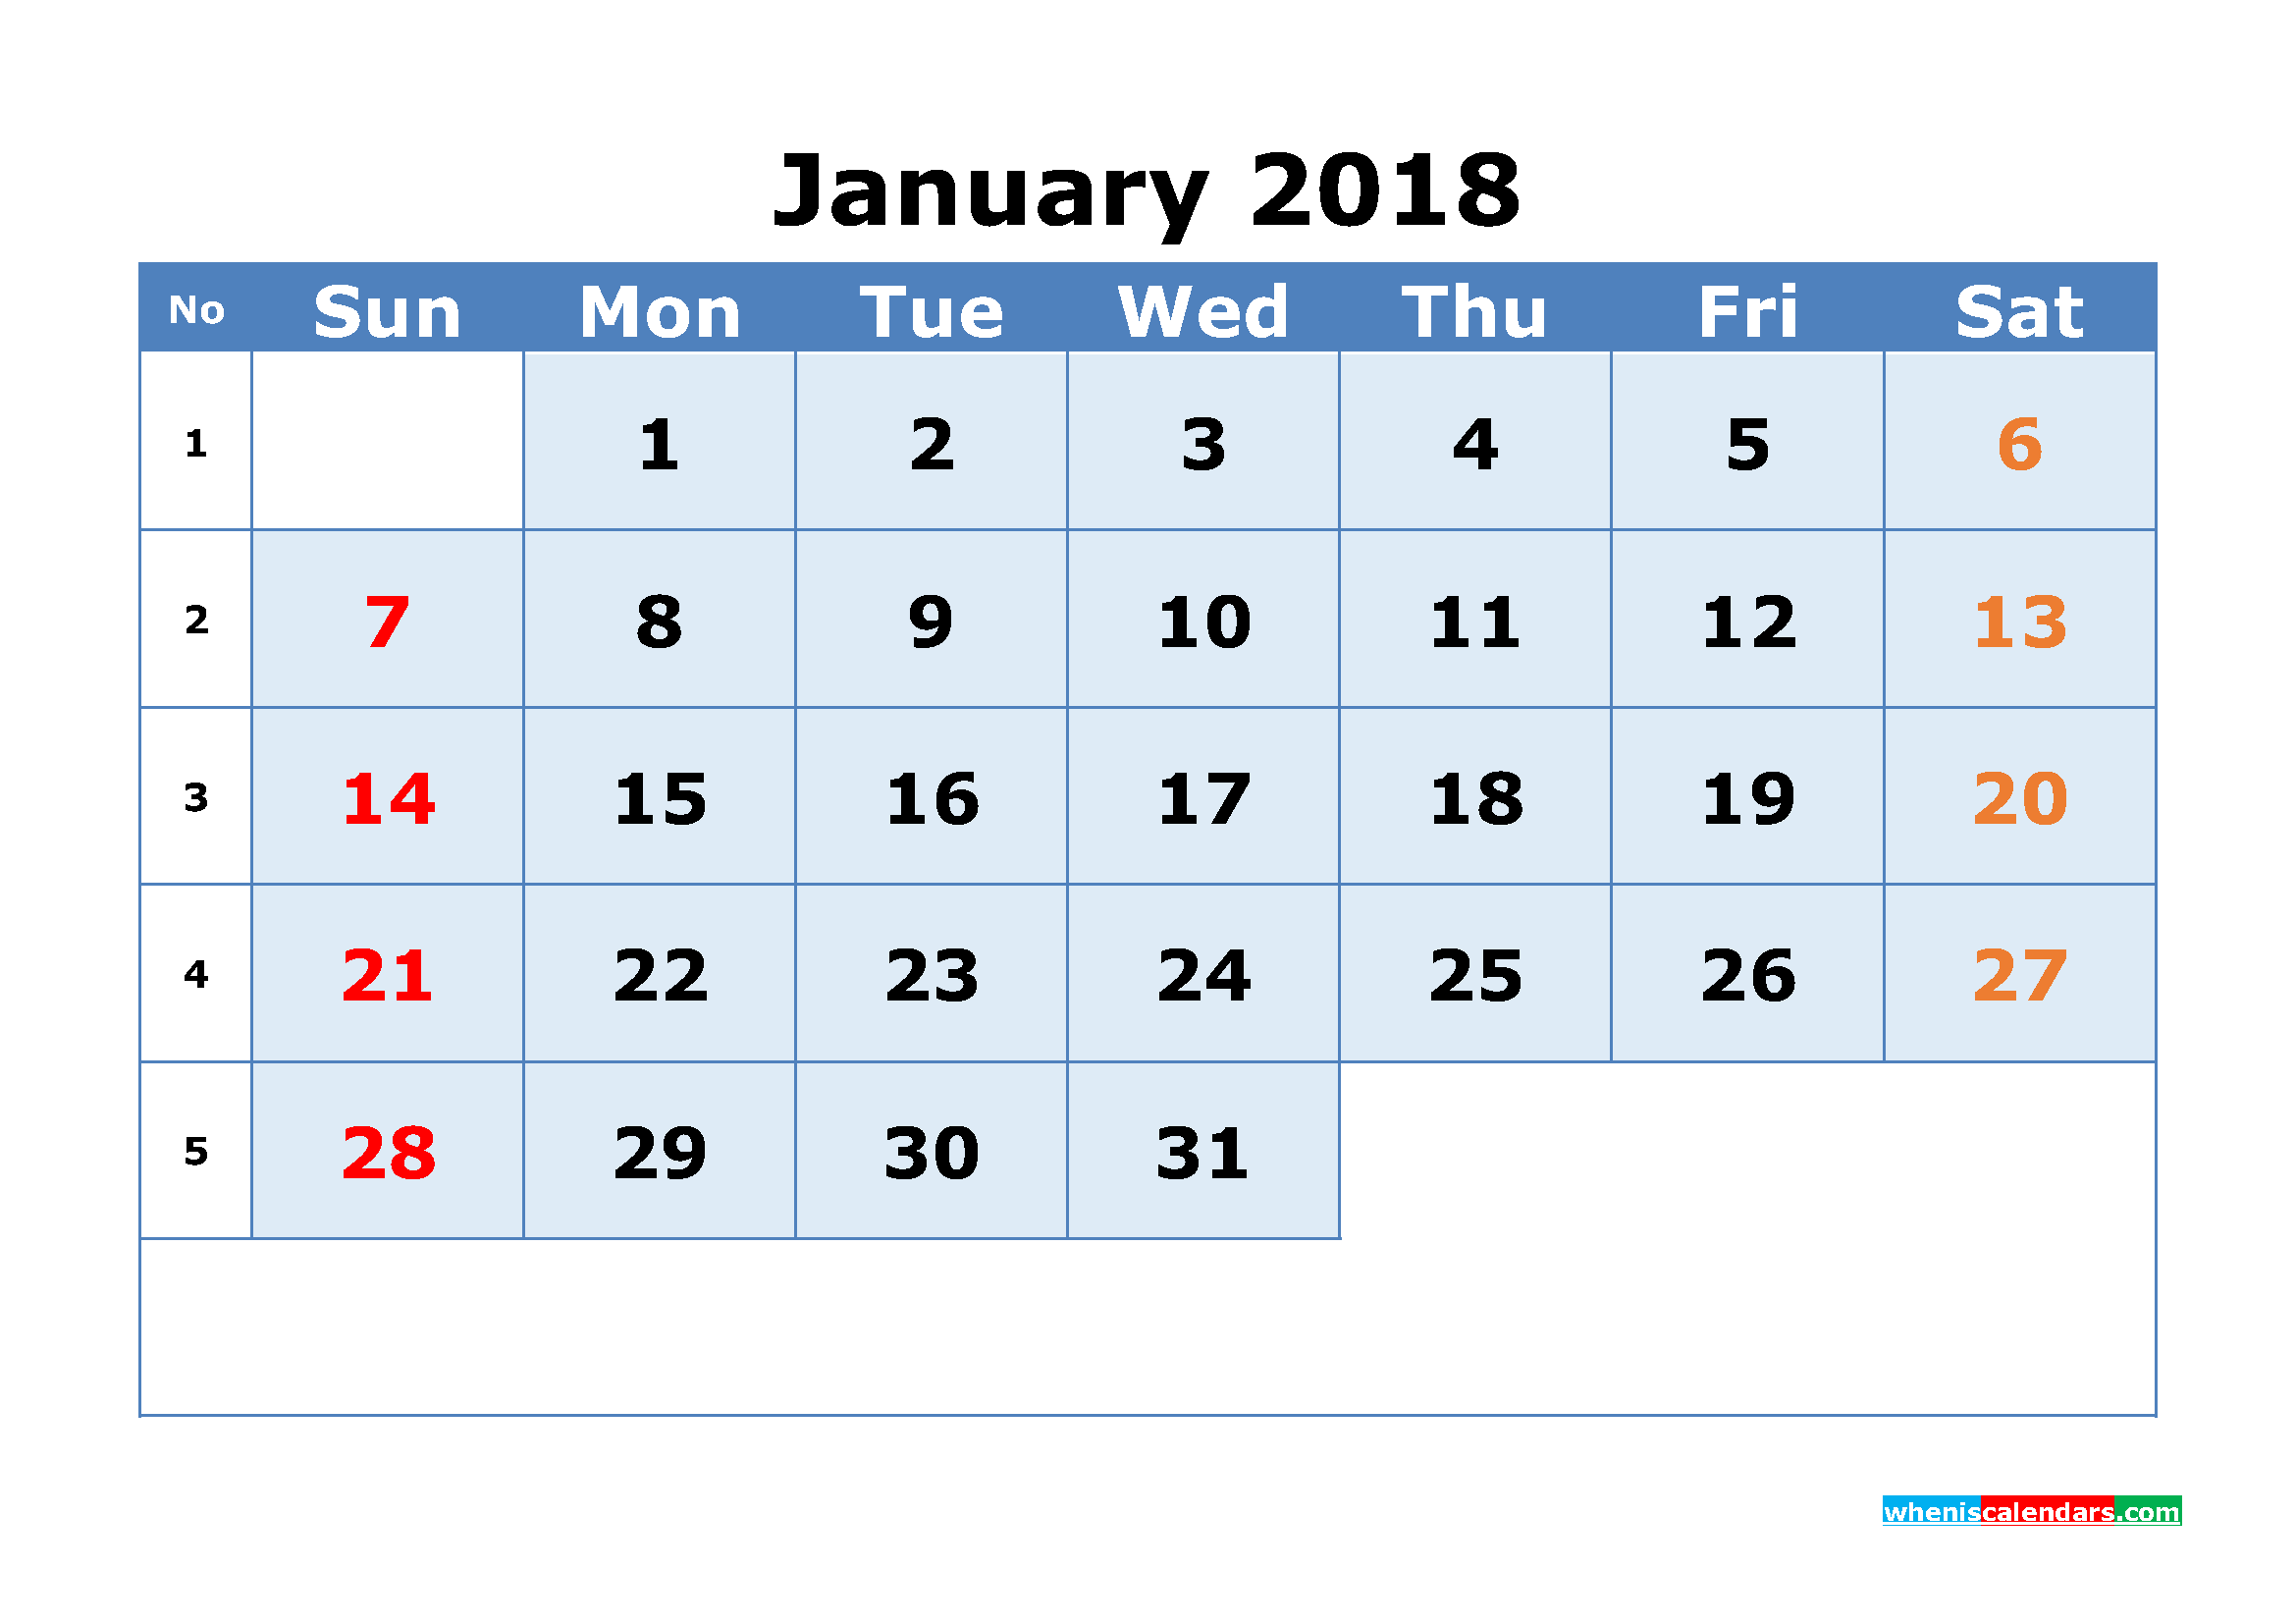 Printable Calendar January 2018 with Week Numbers as, Image